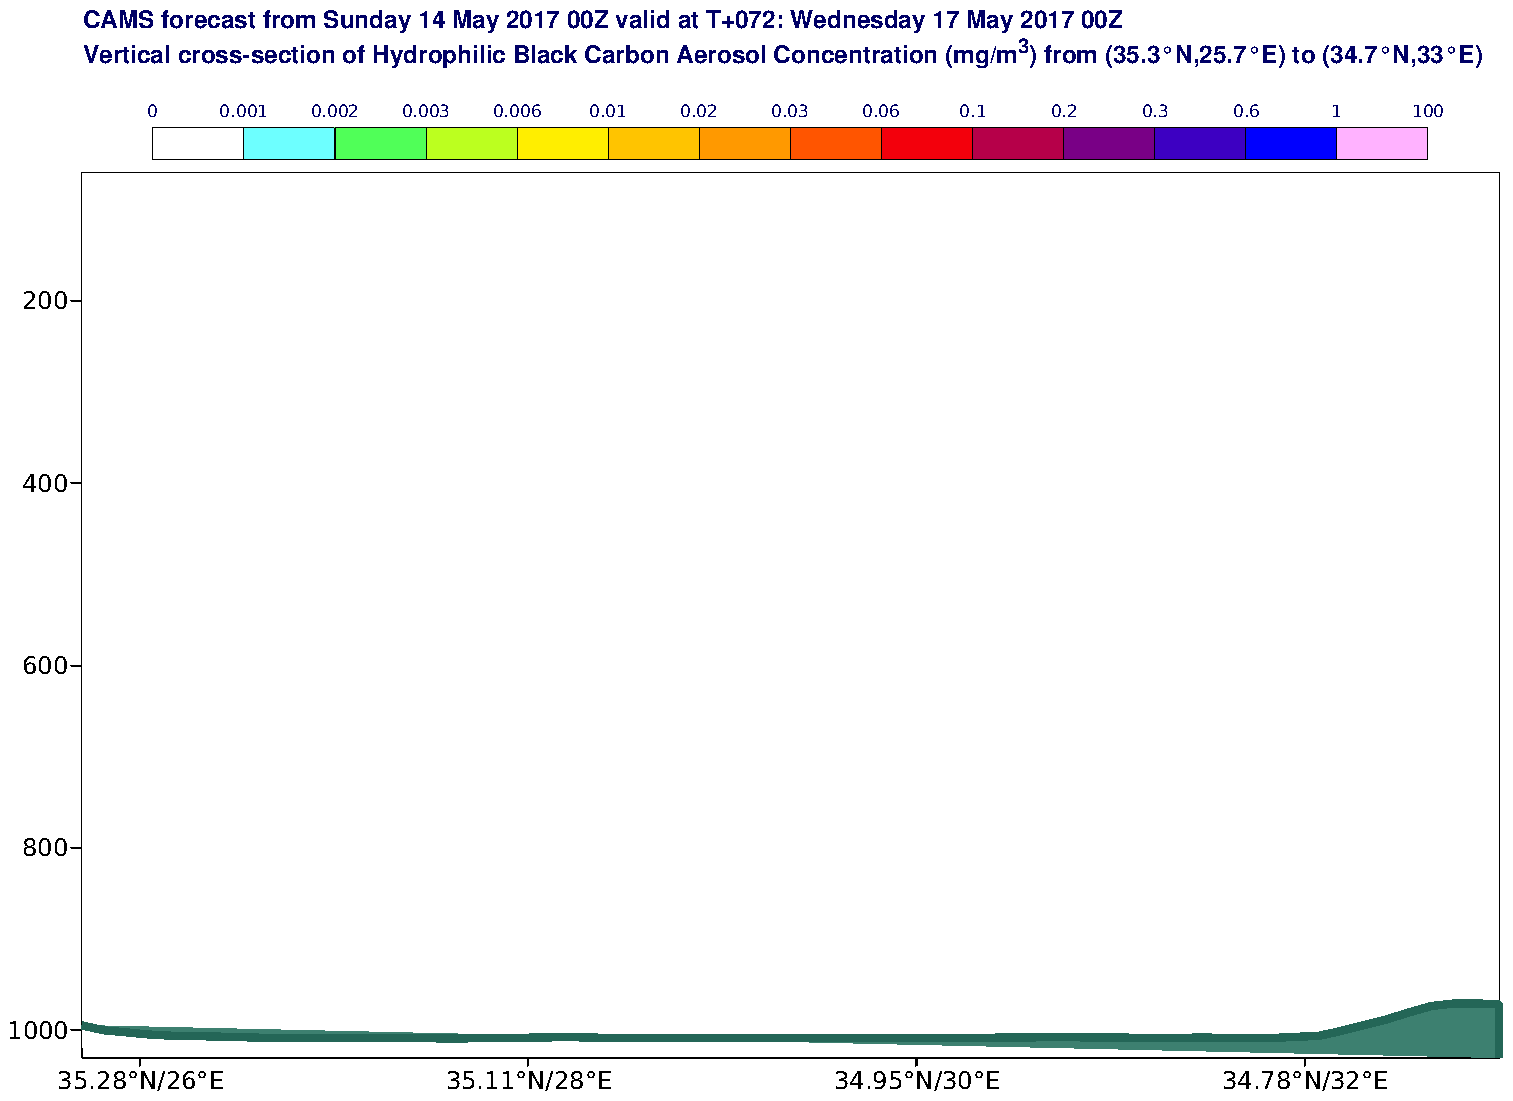 Vertical cross-section of Hydrophilic Black Carbon Aerosol Concentration (mg/m3) valid at T72 - 2017-05-17 00:00